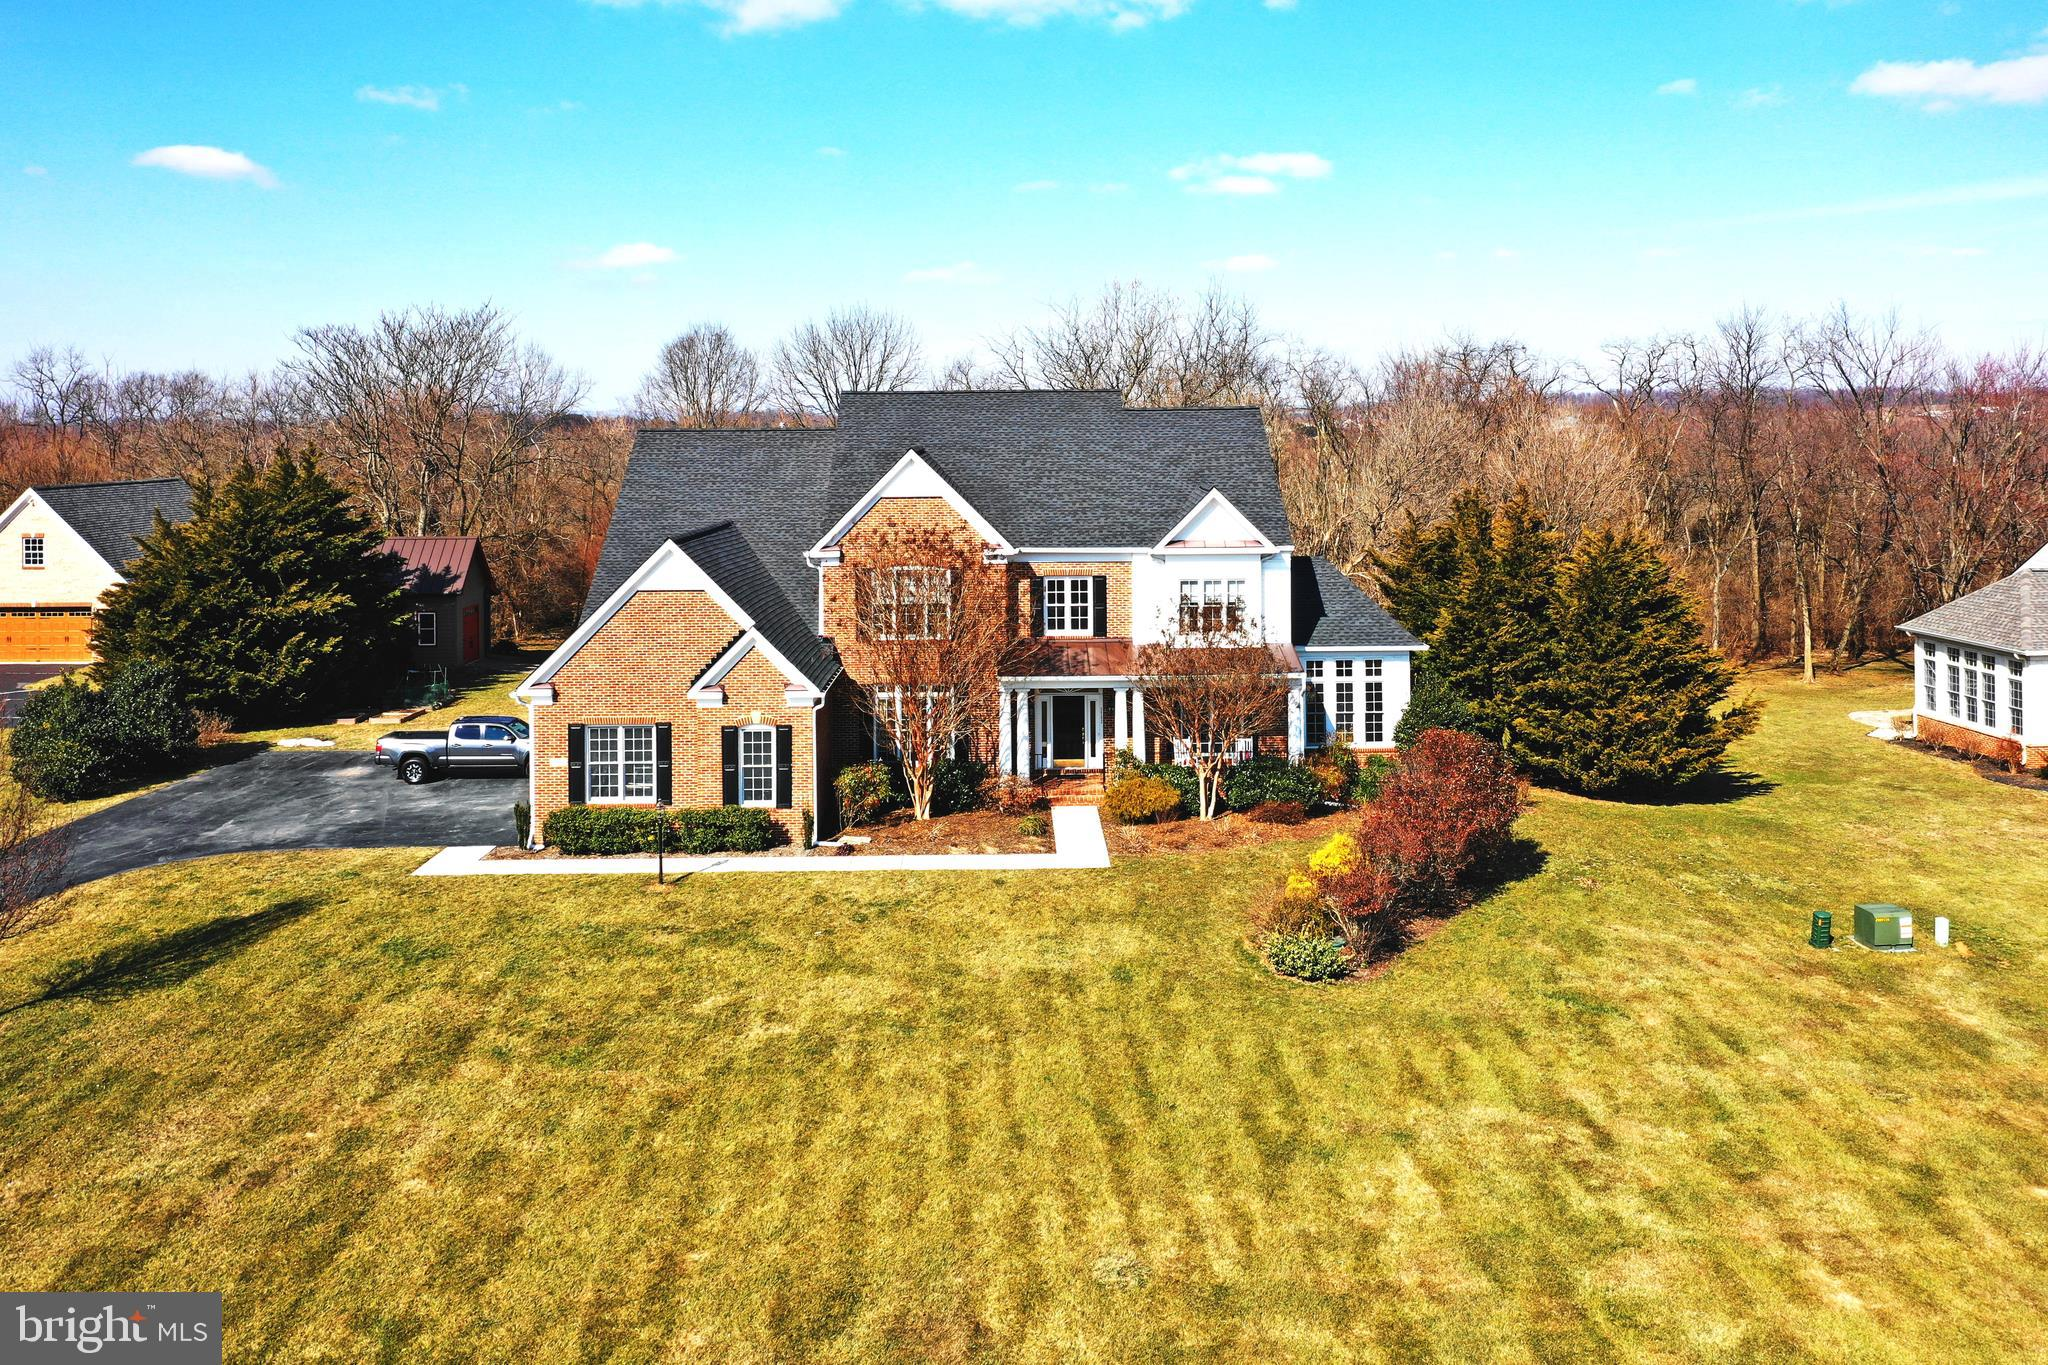 9702 CLYDELEVEN DRIVE, HAGERSTOWN, MD 21740